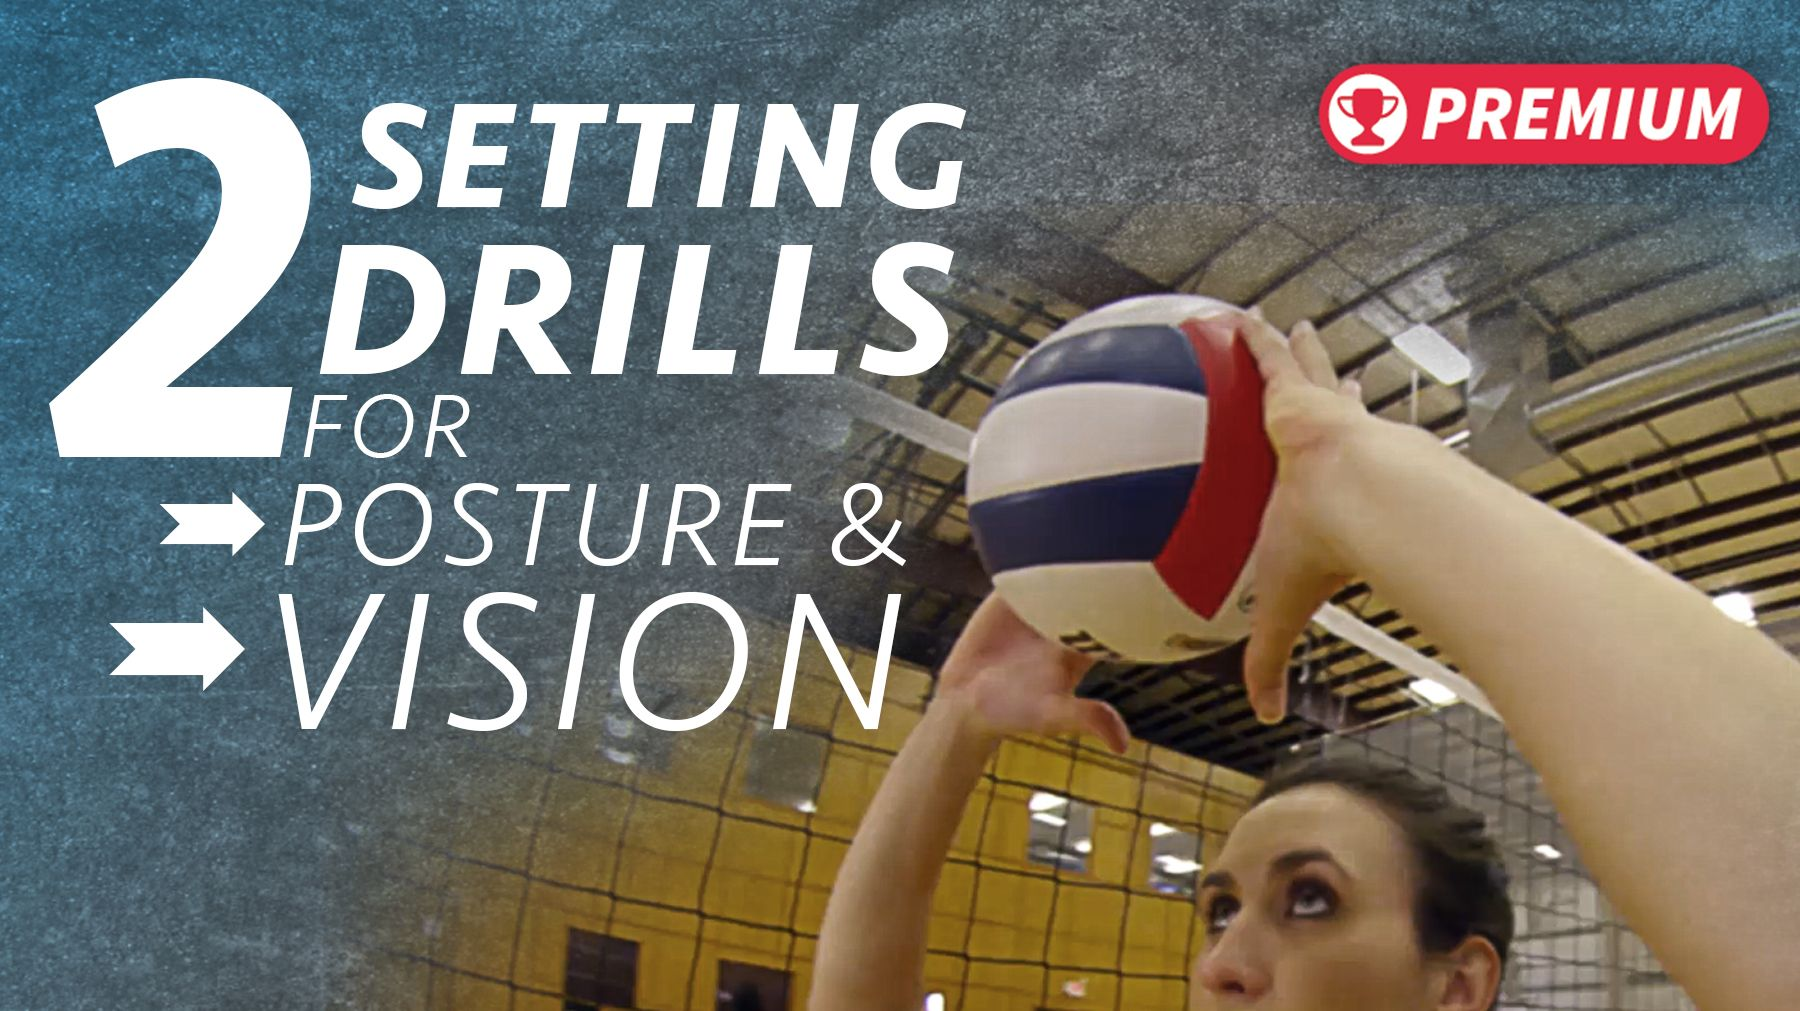 Two Setting Drills For Posture And Vision With Images Coaching Volleyball Setting Drills Tennis Drills